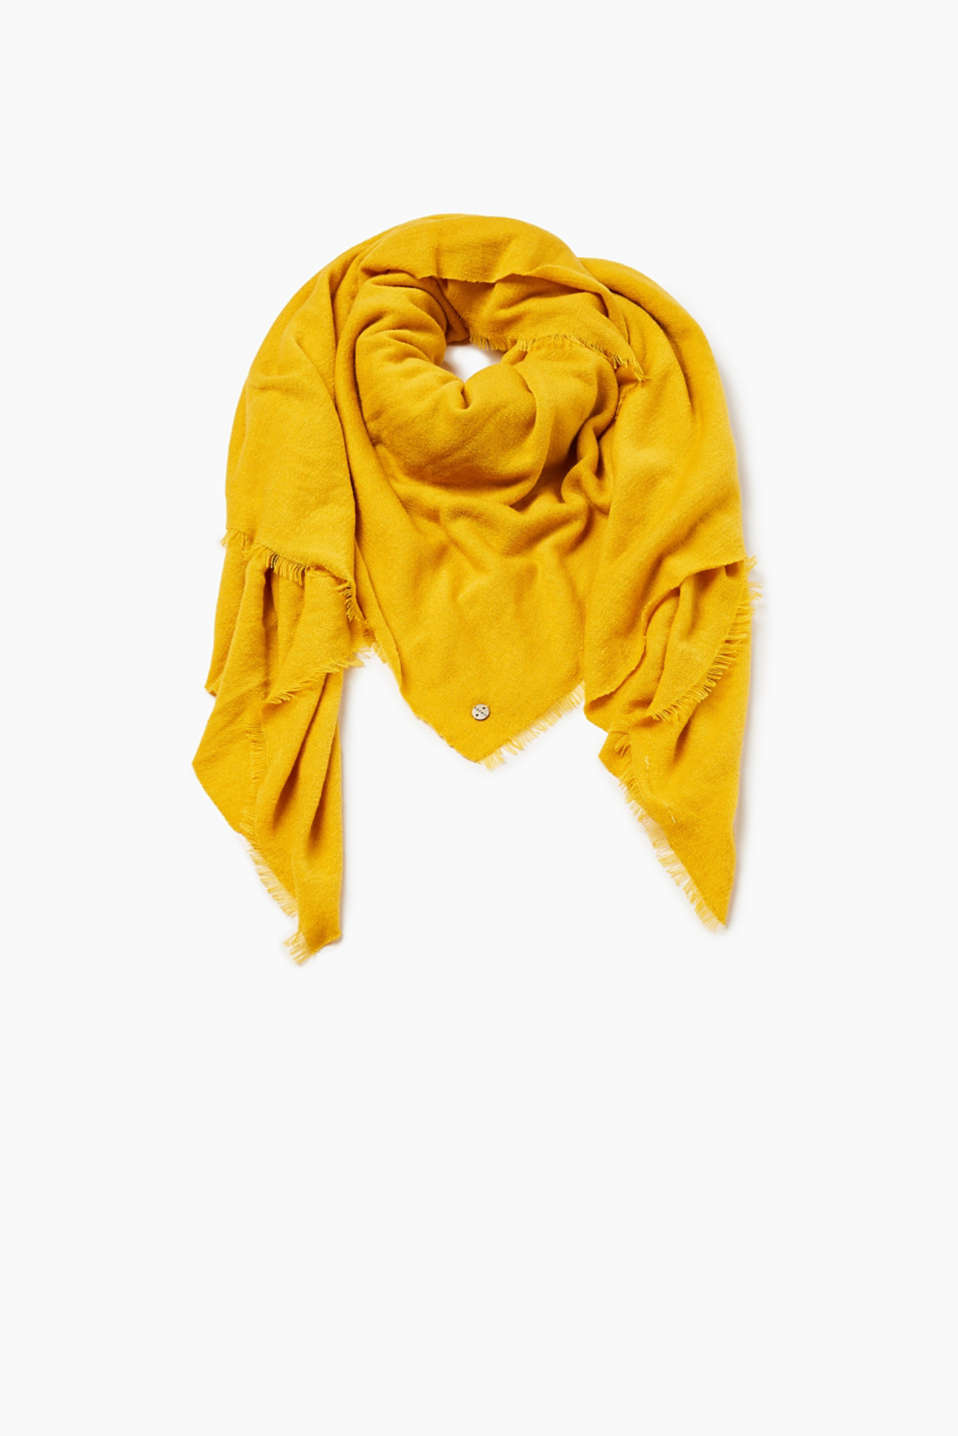 Striking trend colours and a casual look make this scarf an autumn favourite.